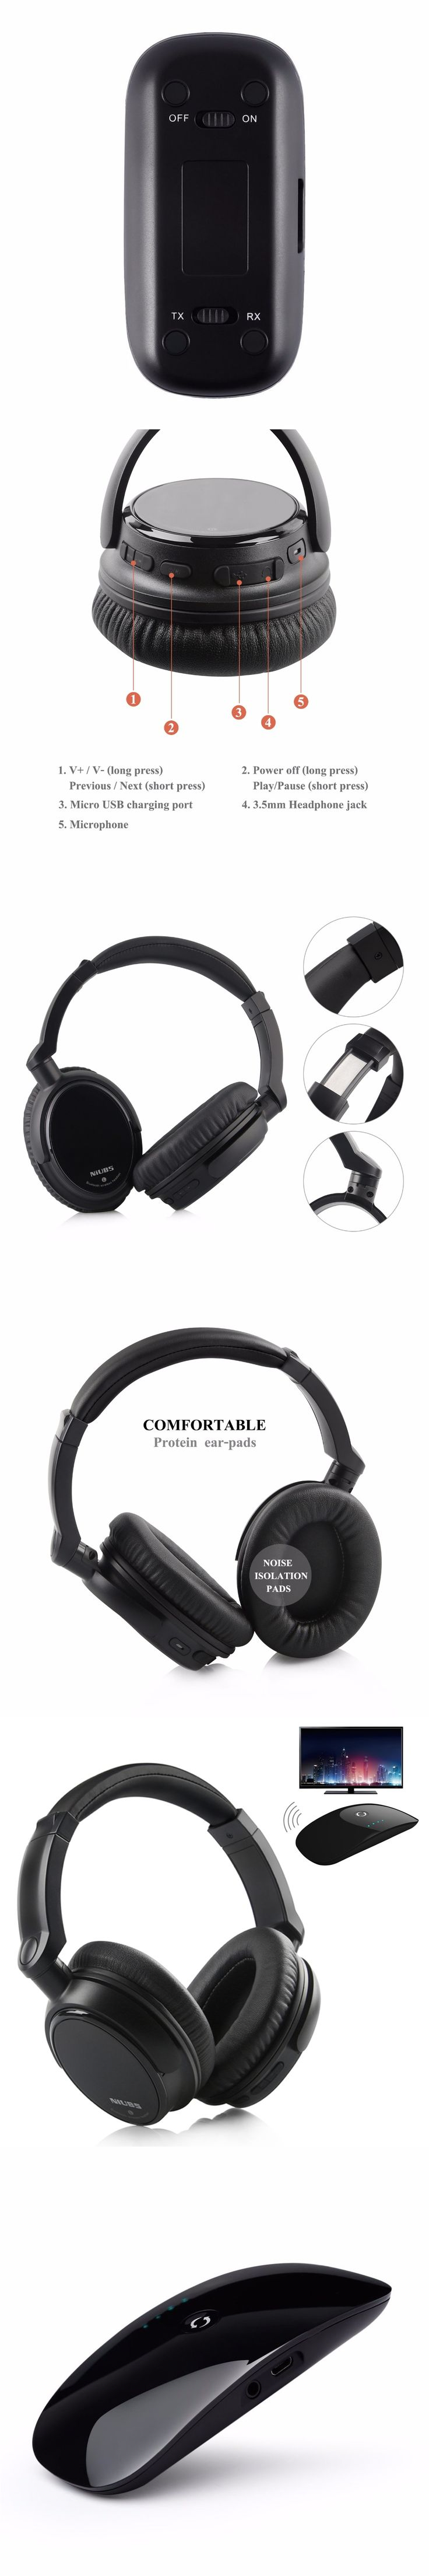 2016 New Bluetooth Headphone NiUB5 BT6 Wired & Wireless HiFi Headset with Microphone for Mobile Phone fone de ouvido bluetooth